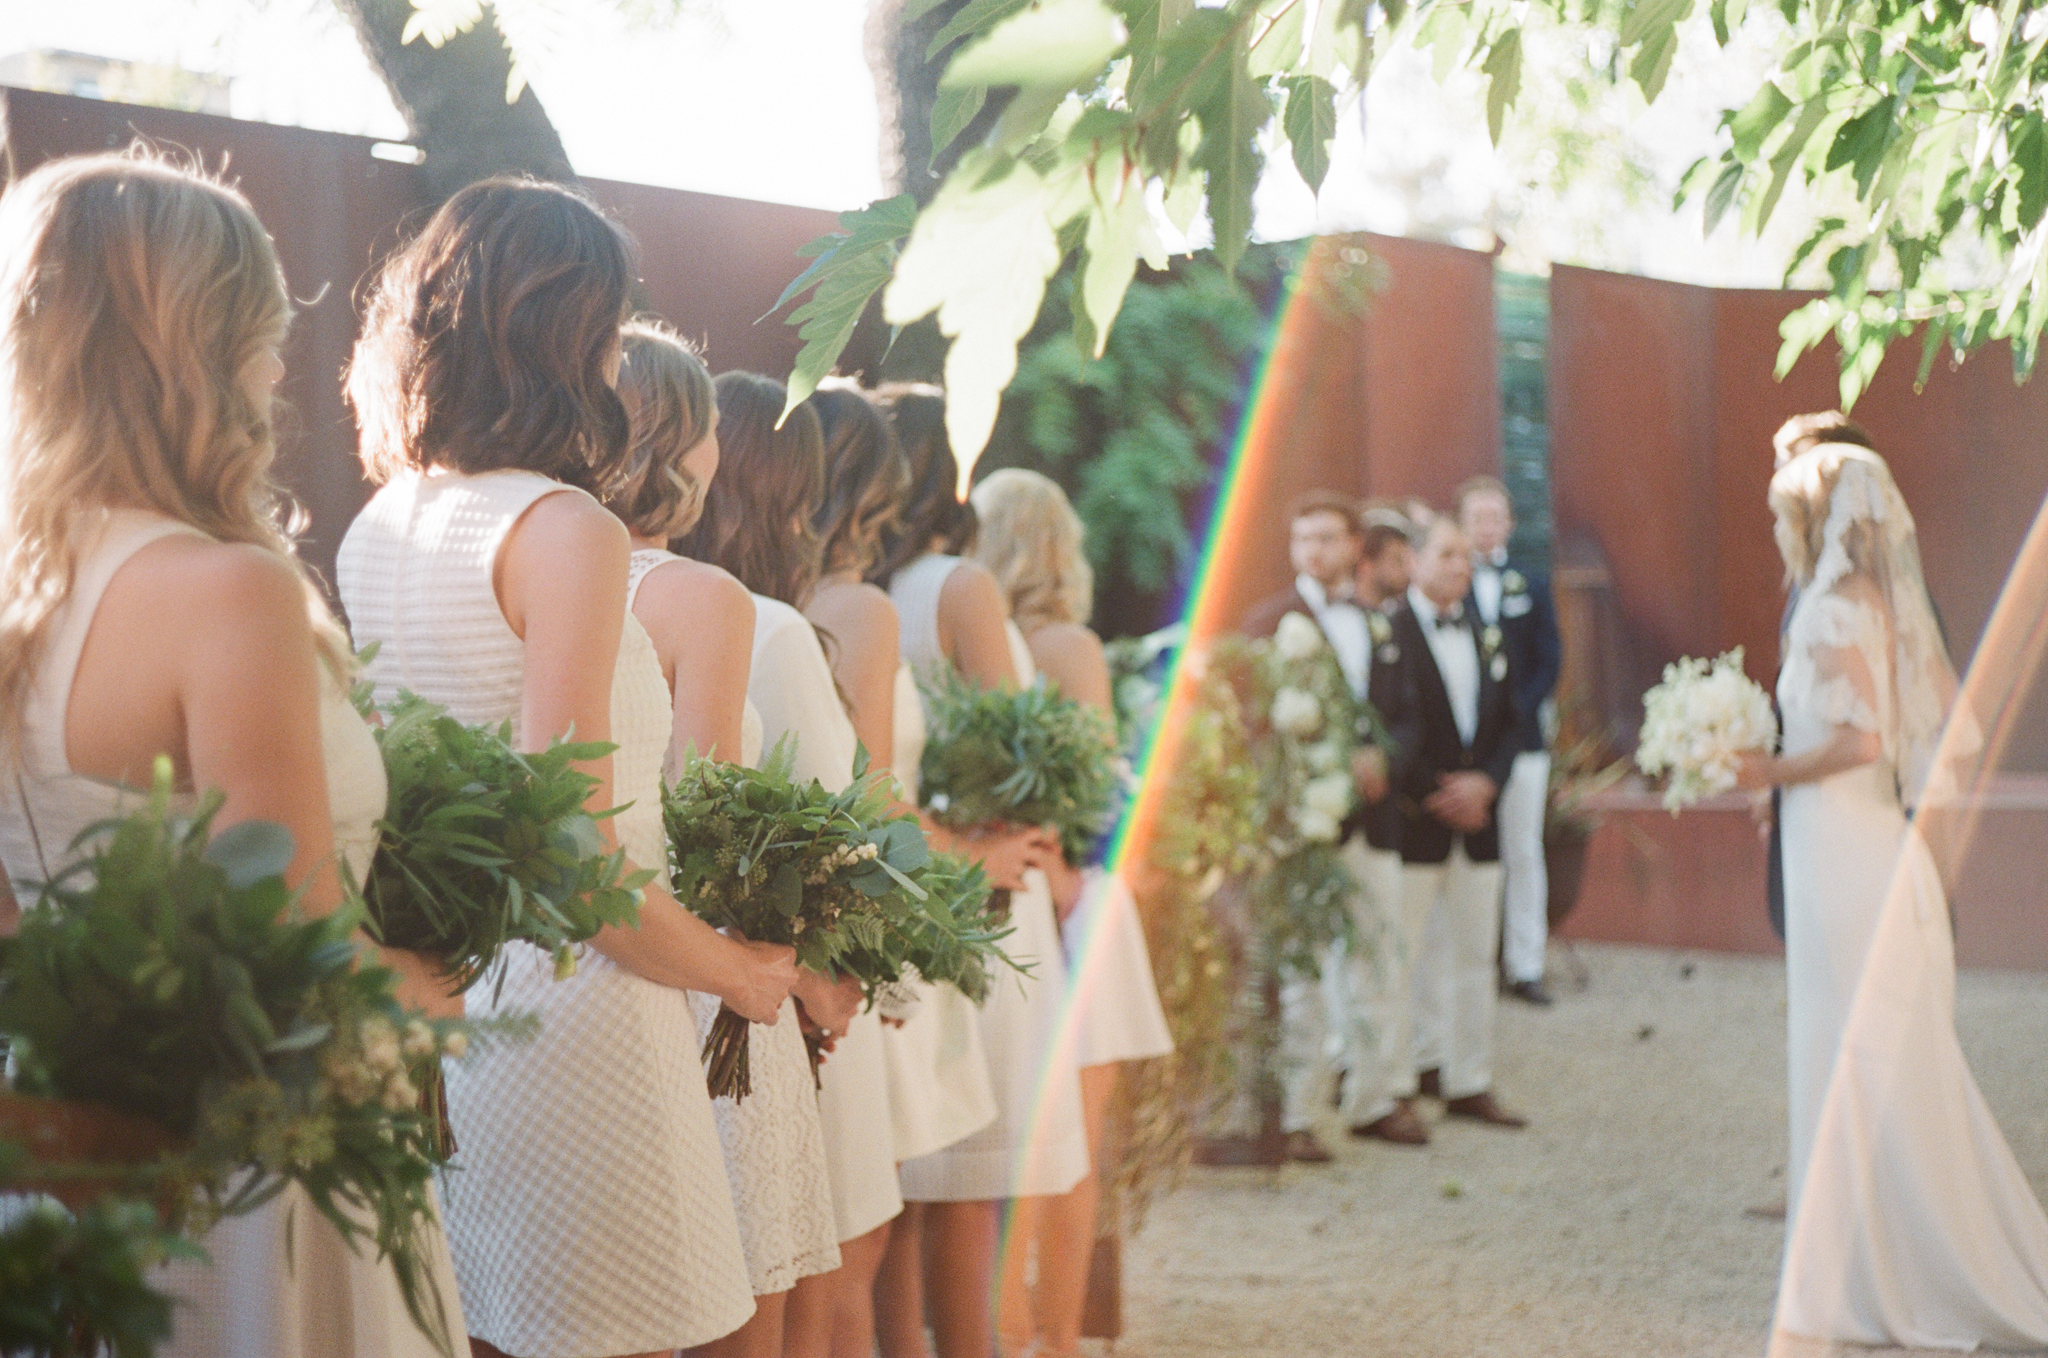 wedding_photos_by_helios_images-22.jpg